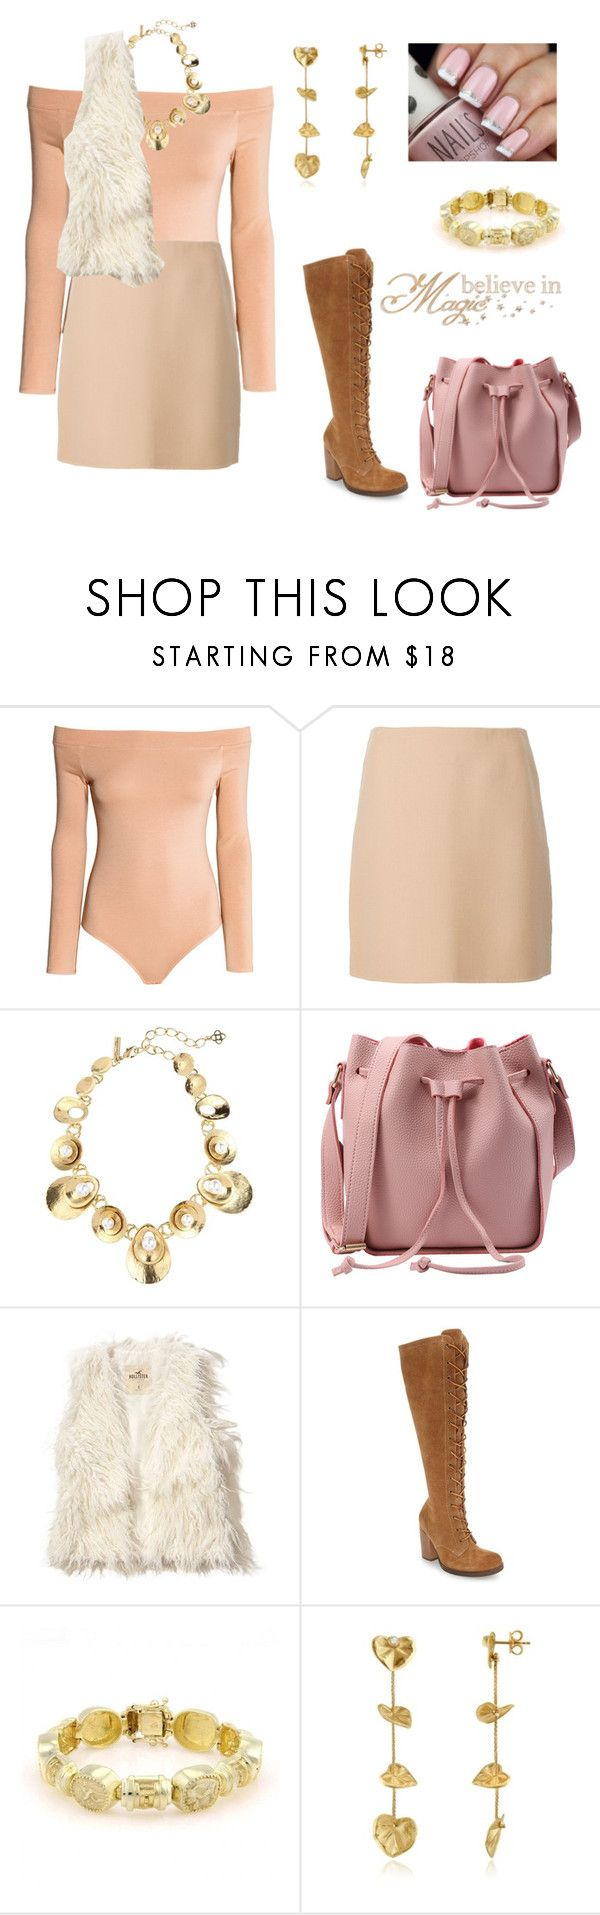 """""""Skirt person"""" by julie-ruud ❤ liked on Polyvore featuring Theory, Oscar de la Renta, Hollister Co., Latigo and Torrini"""